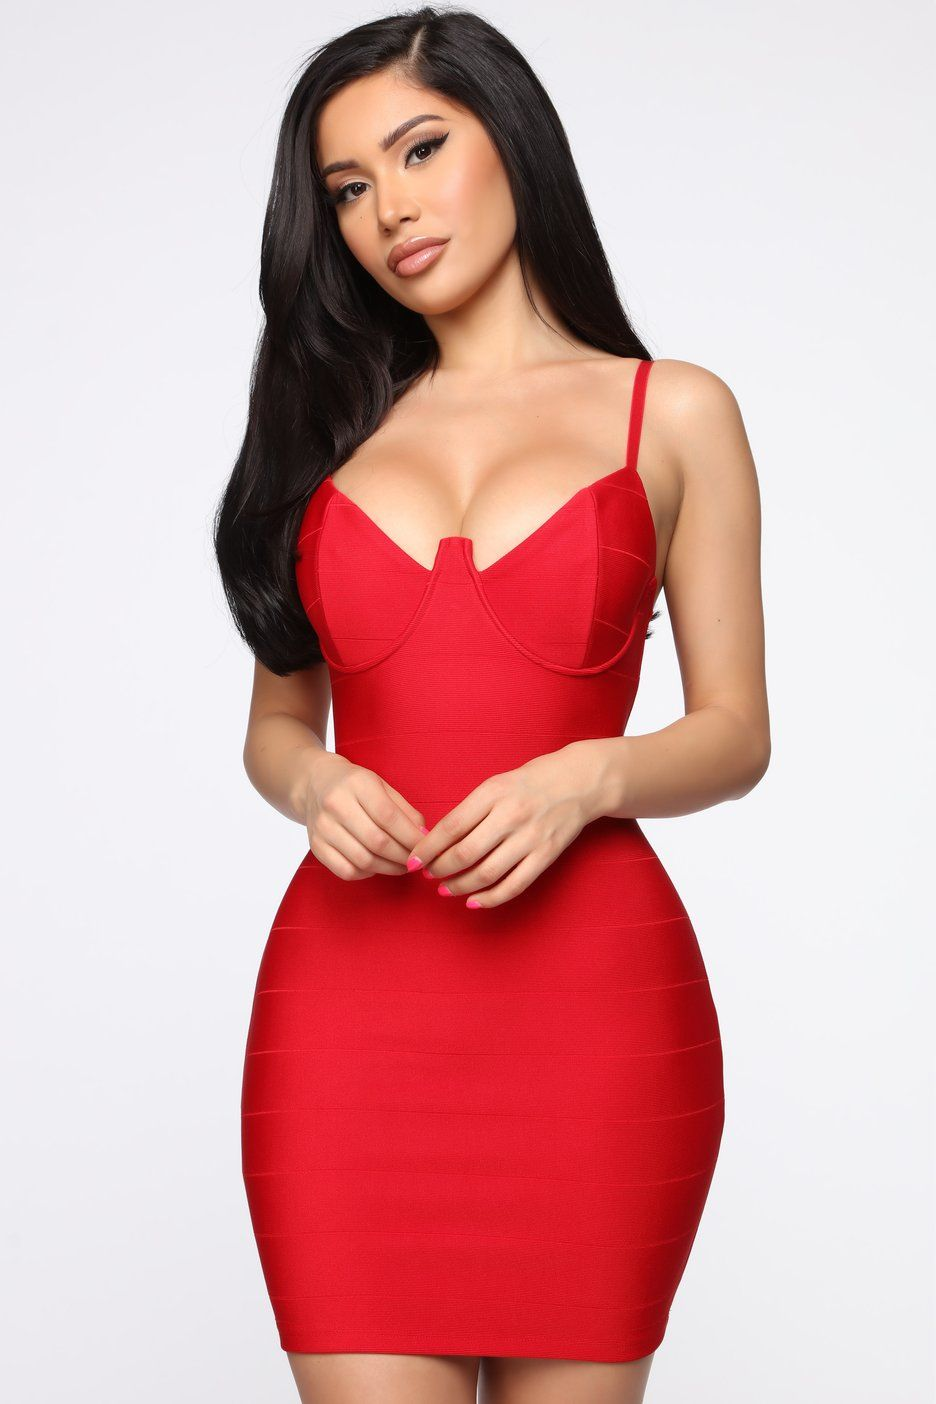 Playful Night Bandage Mini Dress Taupe in 2021 Red